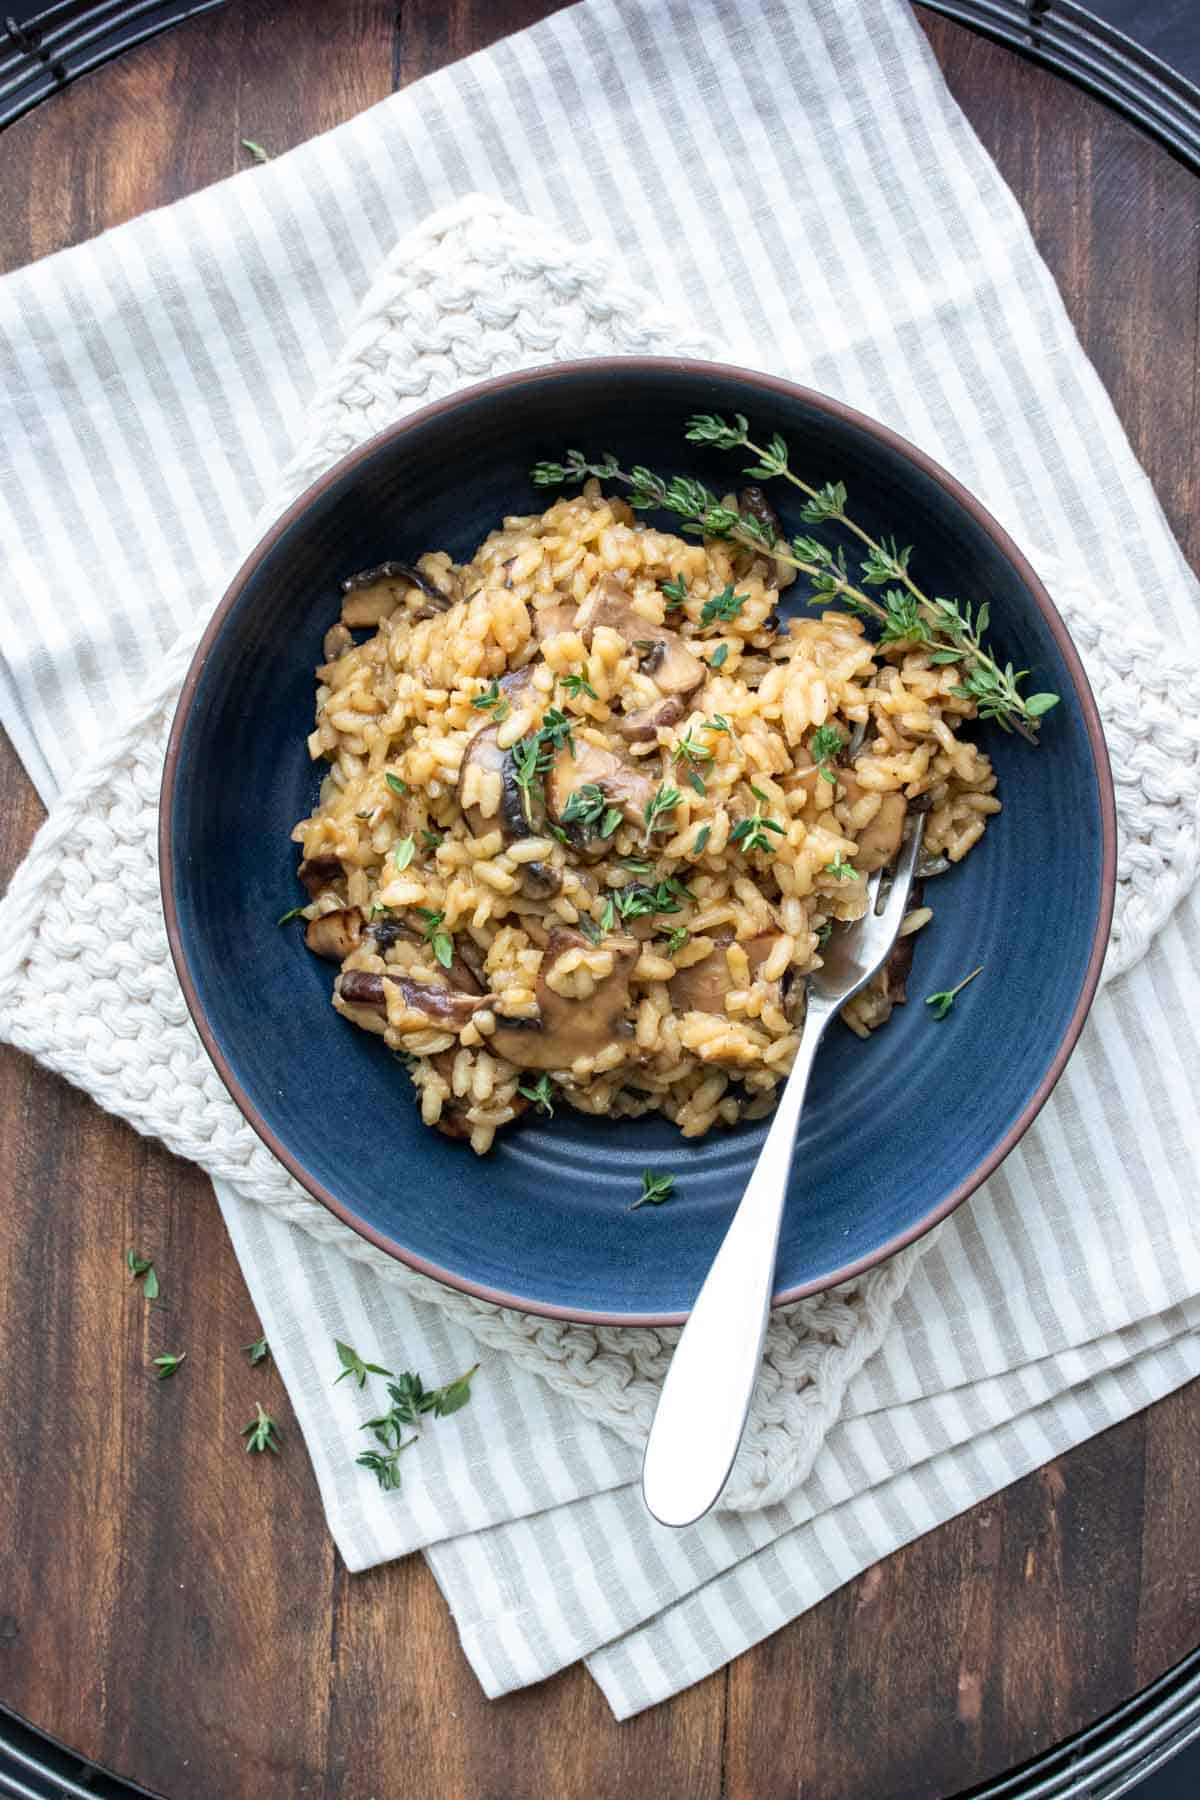 Dark blue bowl filled with mushroom risotto and topped with thyme